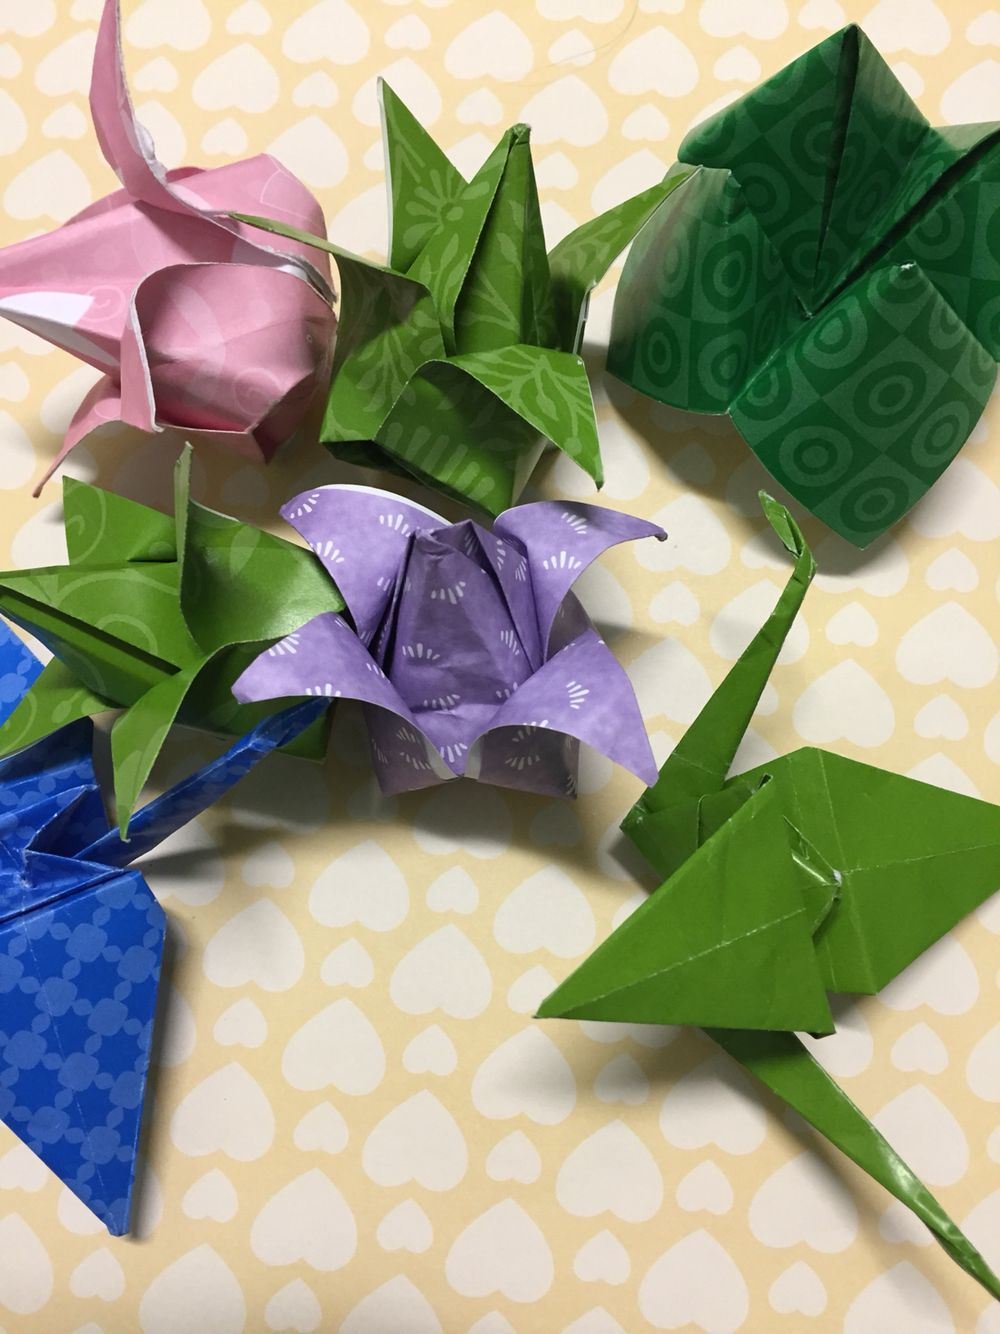 Spent This Evening Running An Origami Activity With The Boarders At School Here We Mostly